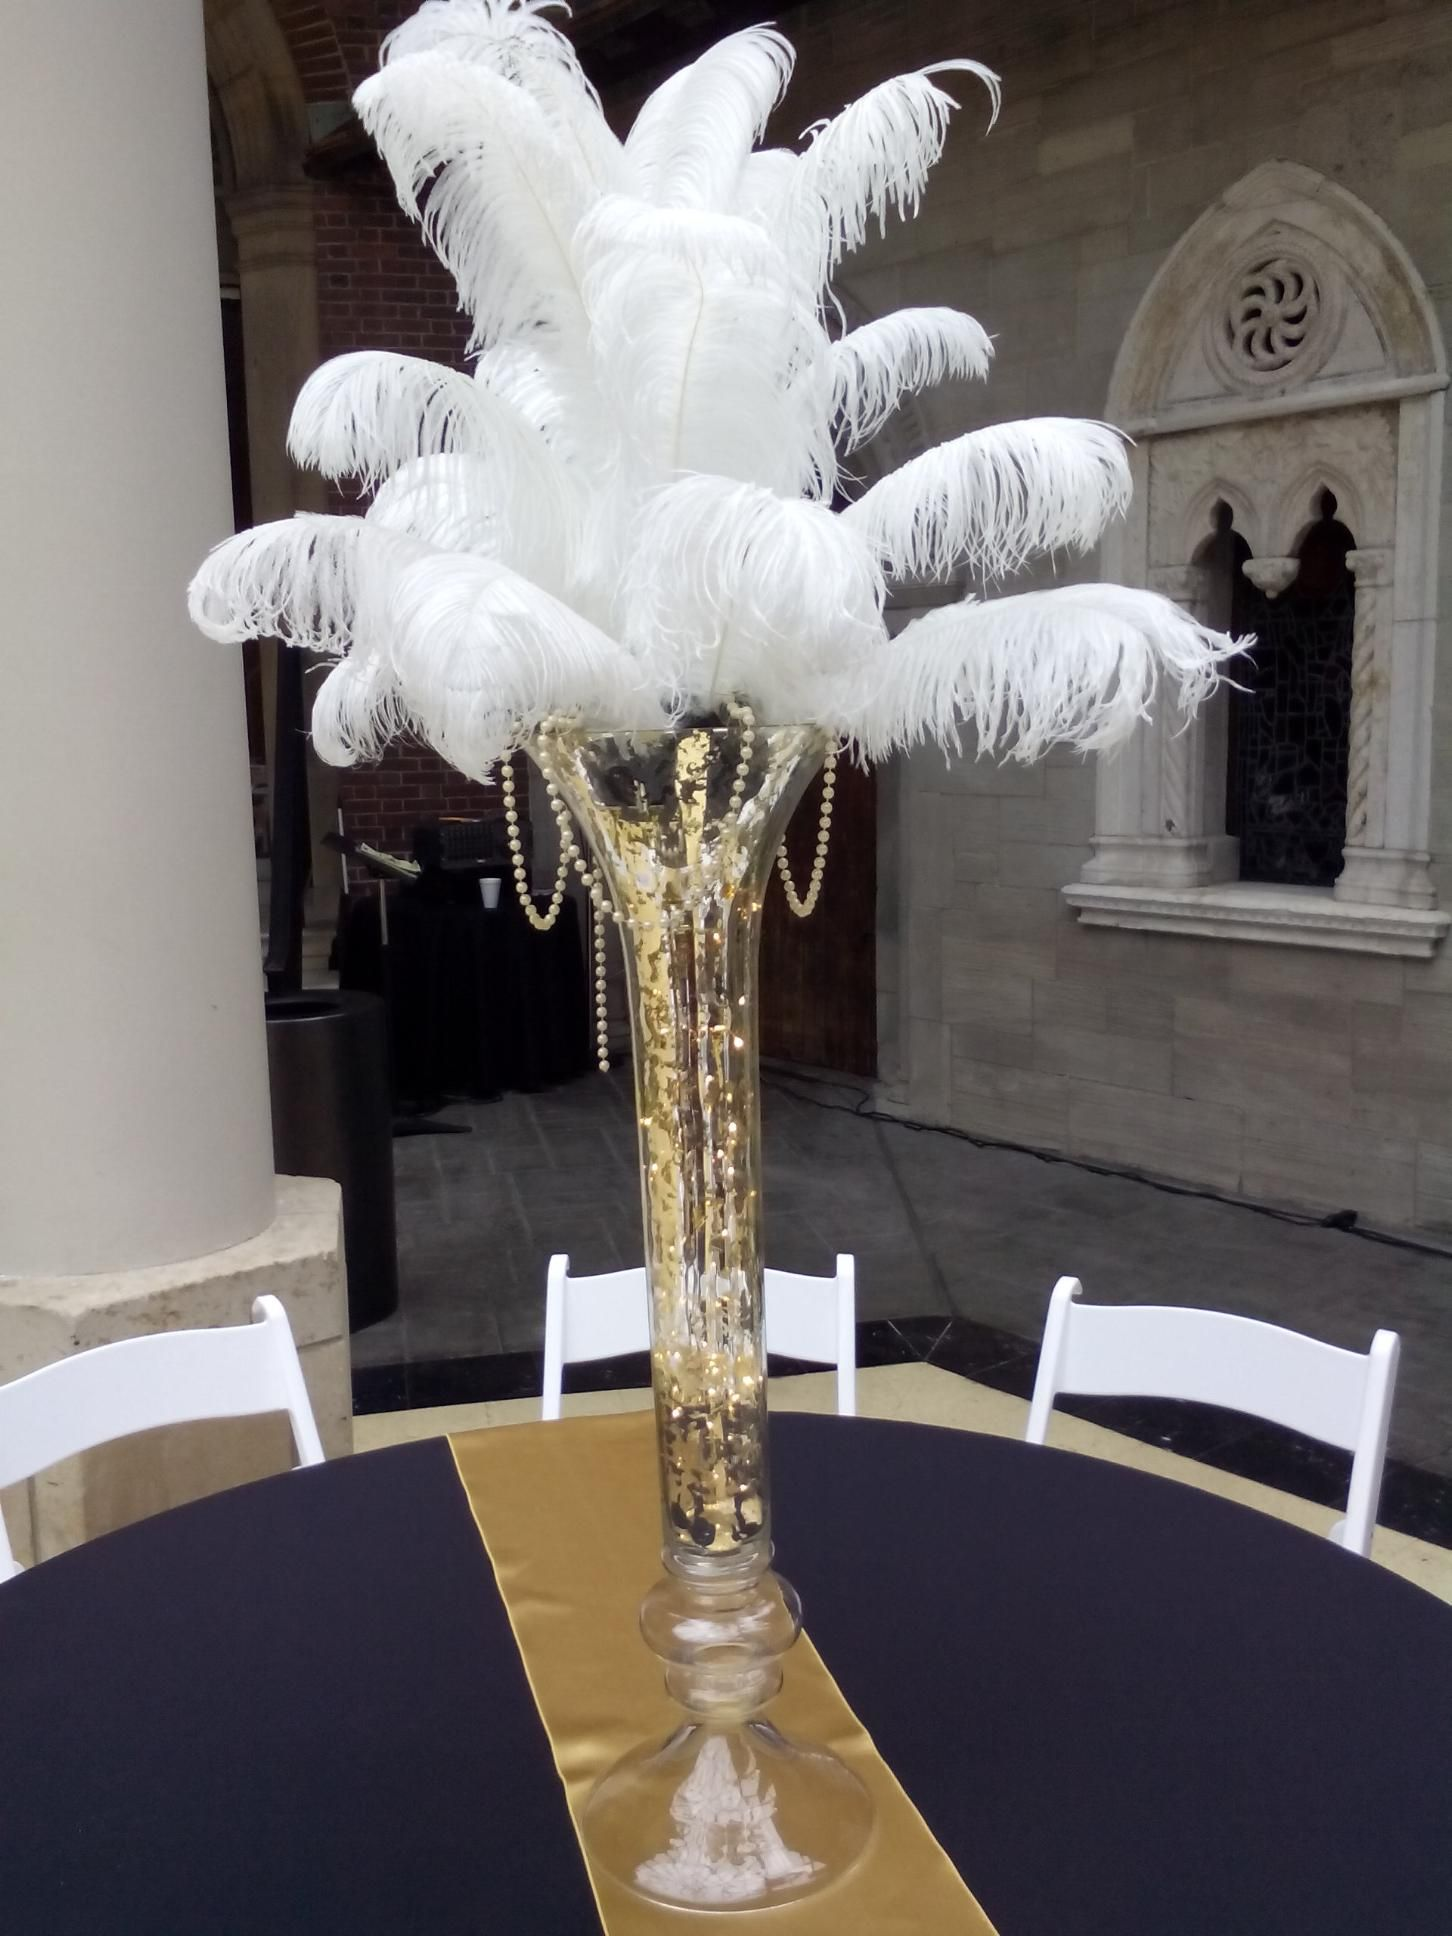 Gatsby weddings. Furst Florist Centerpiece with ostrich feathers #FurstEvents #daytonweddings